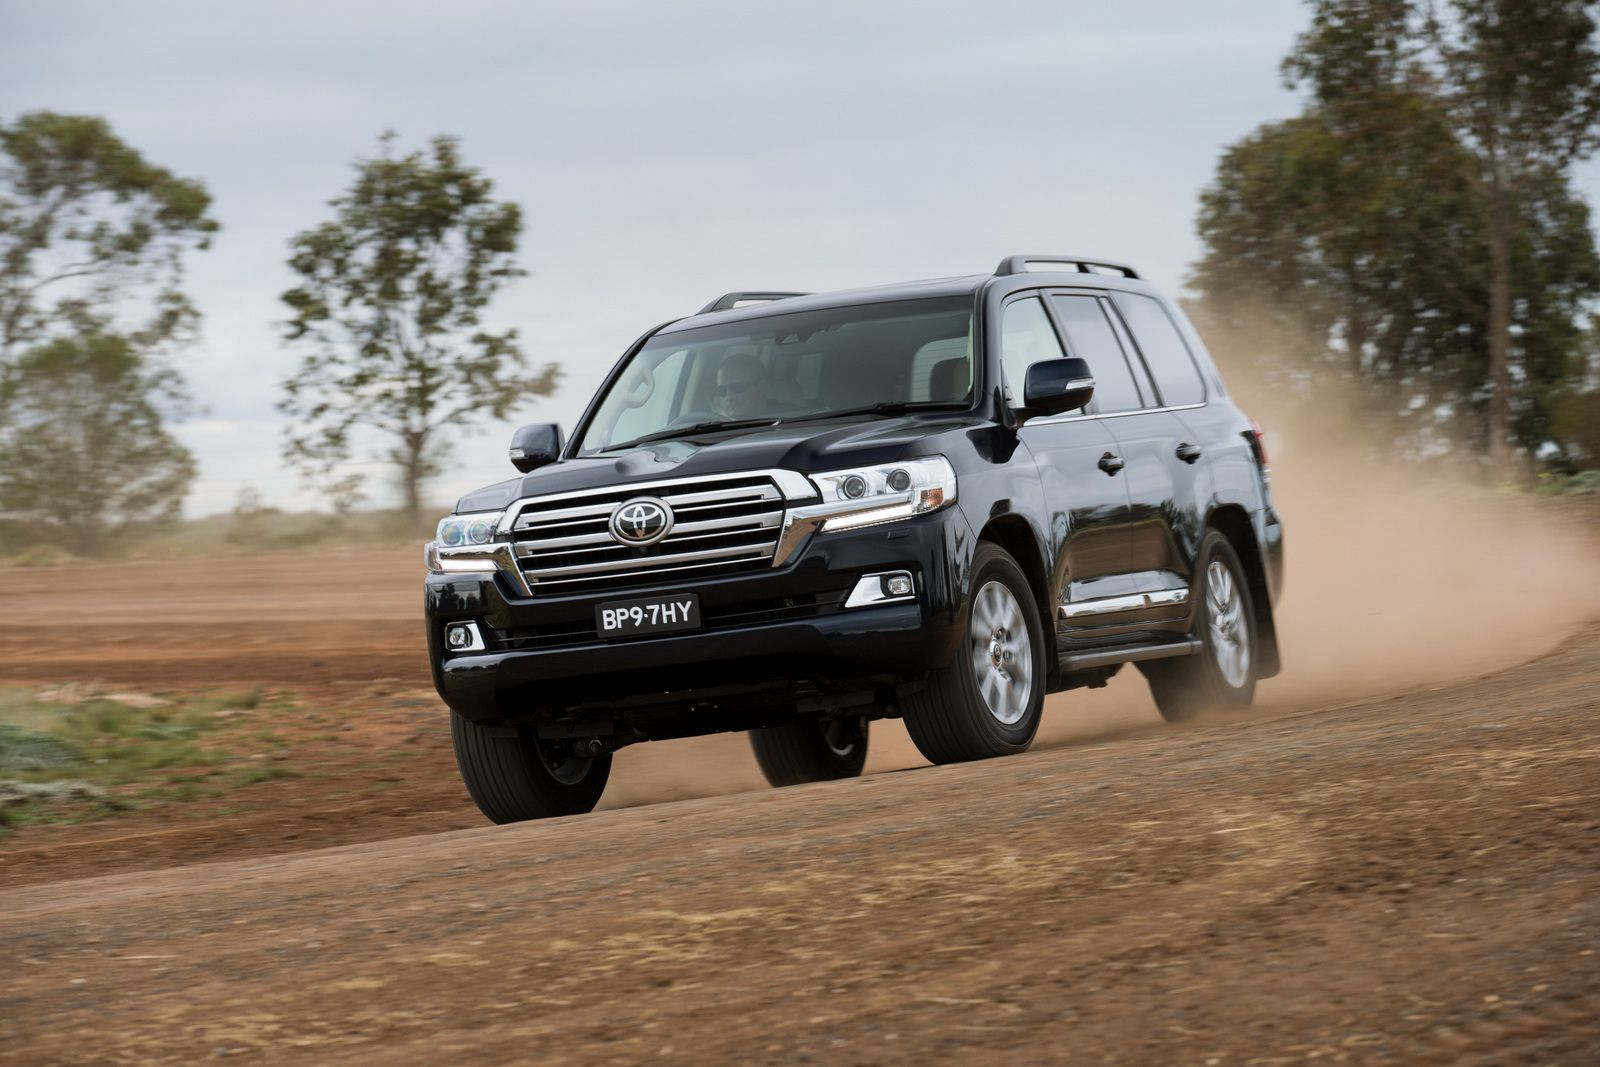 Facelifted toyota land cruiser 200 unveiled in japan w video